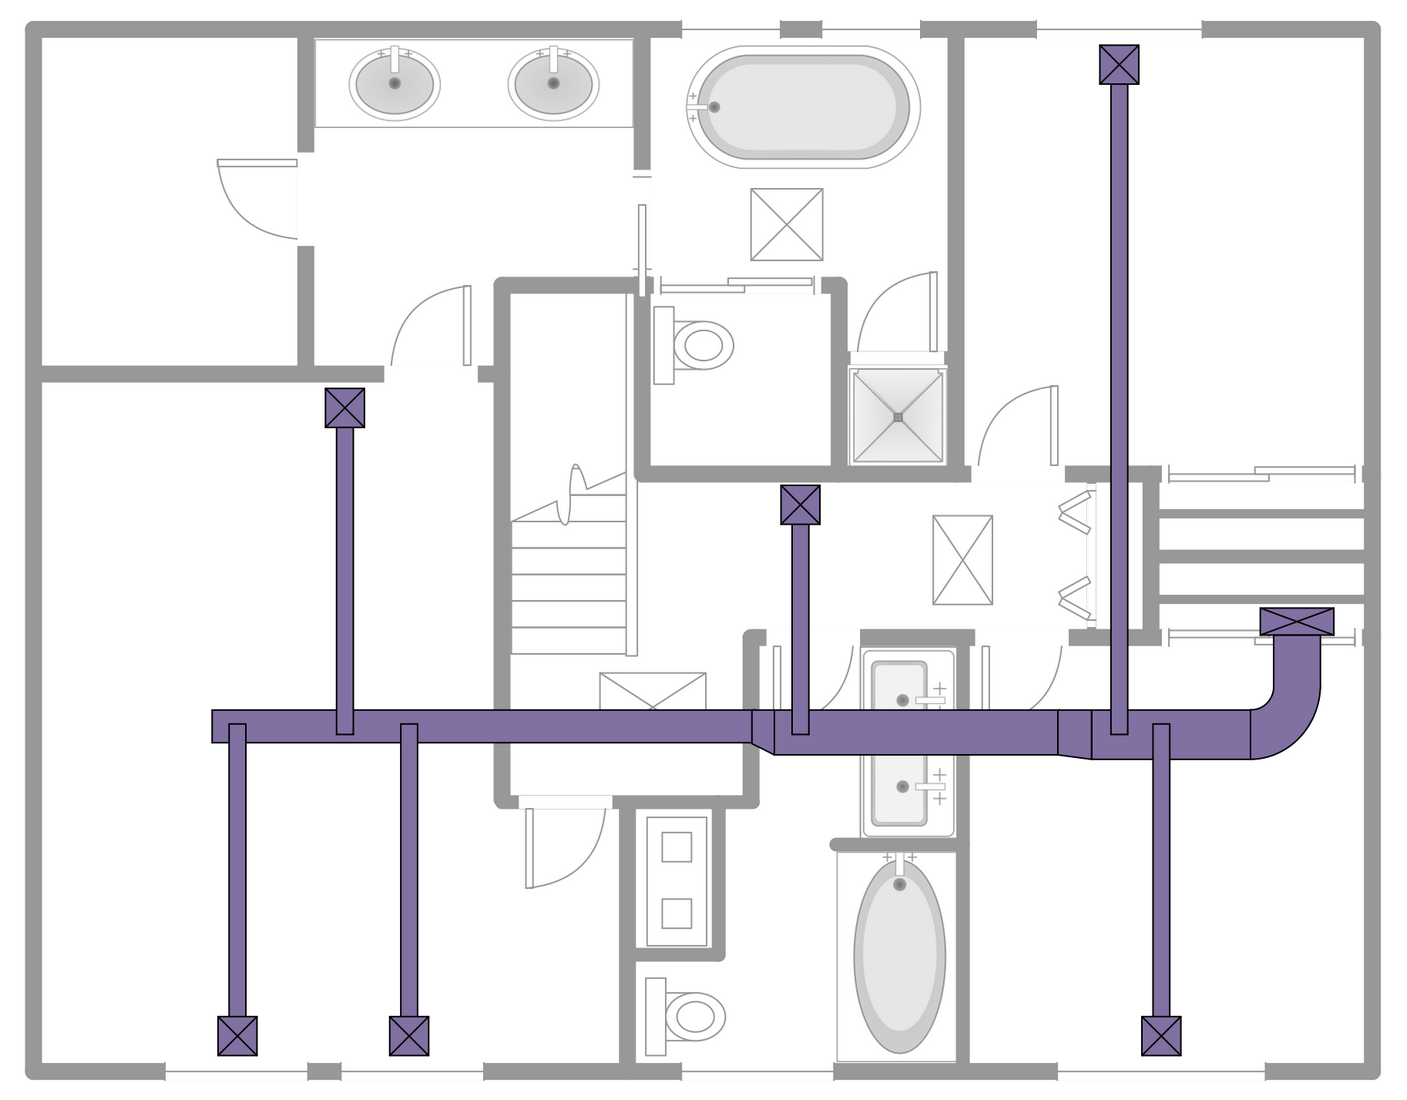 hight resolution of ductwork layout the ducts are ones of the basic elements in a heating ventilation and air conditioning system which are used to deliver and remove the